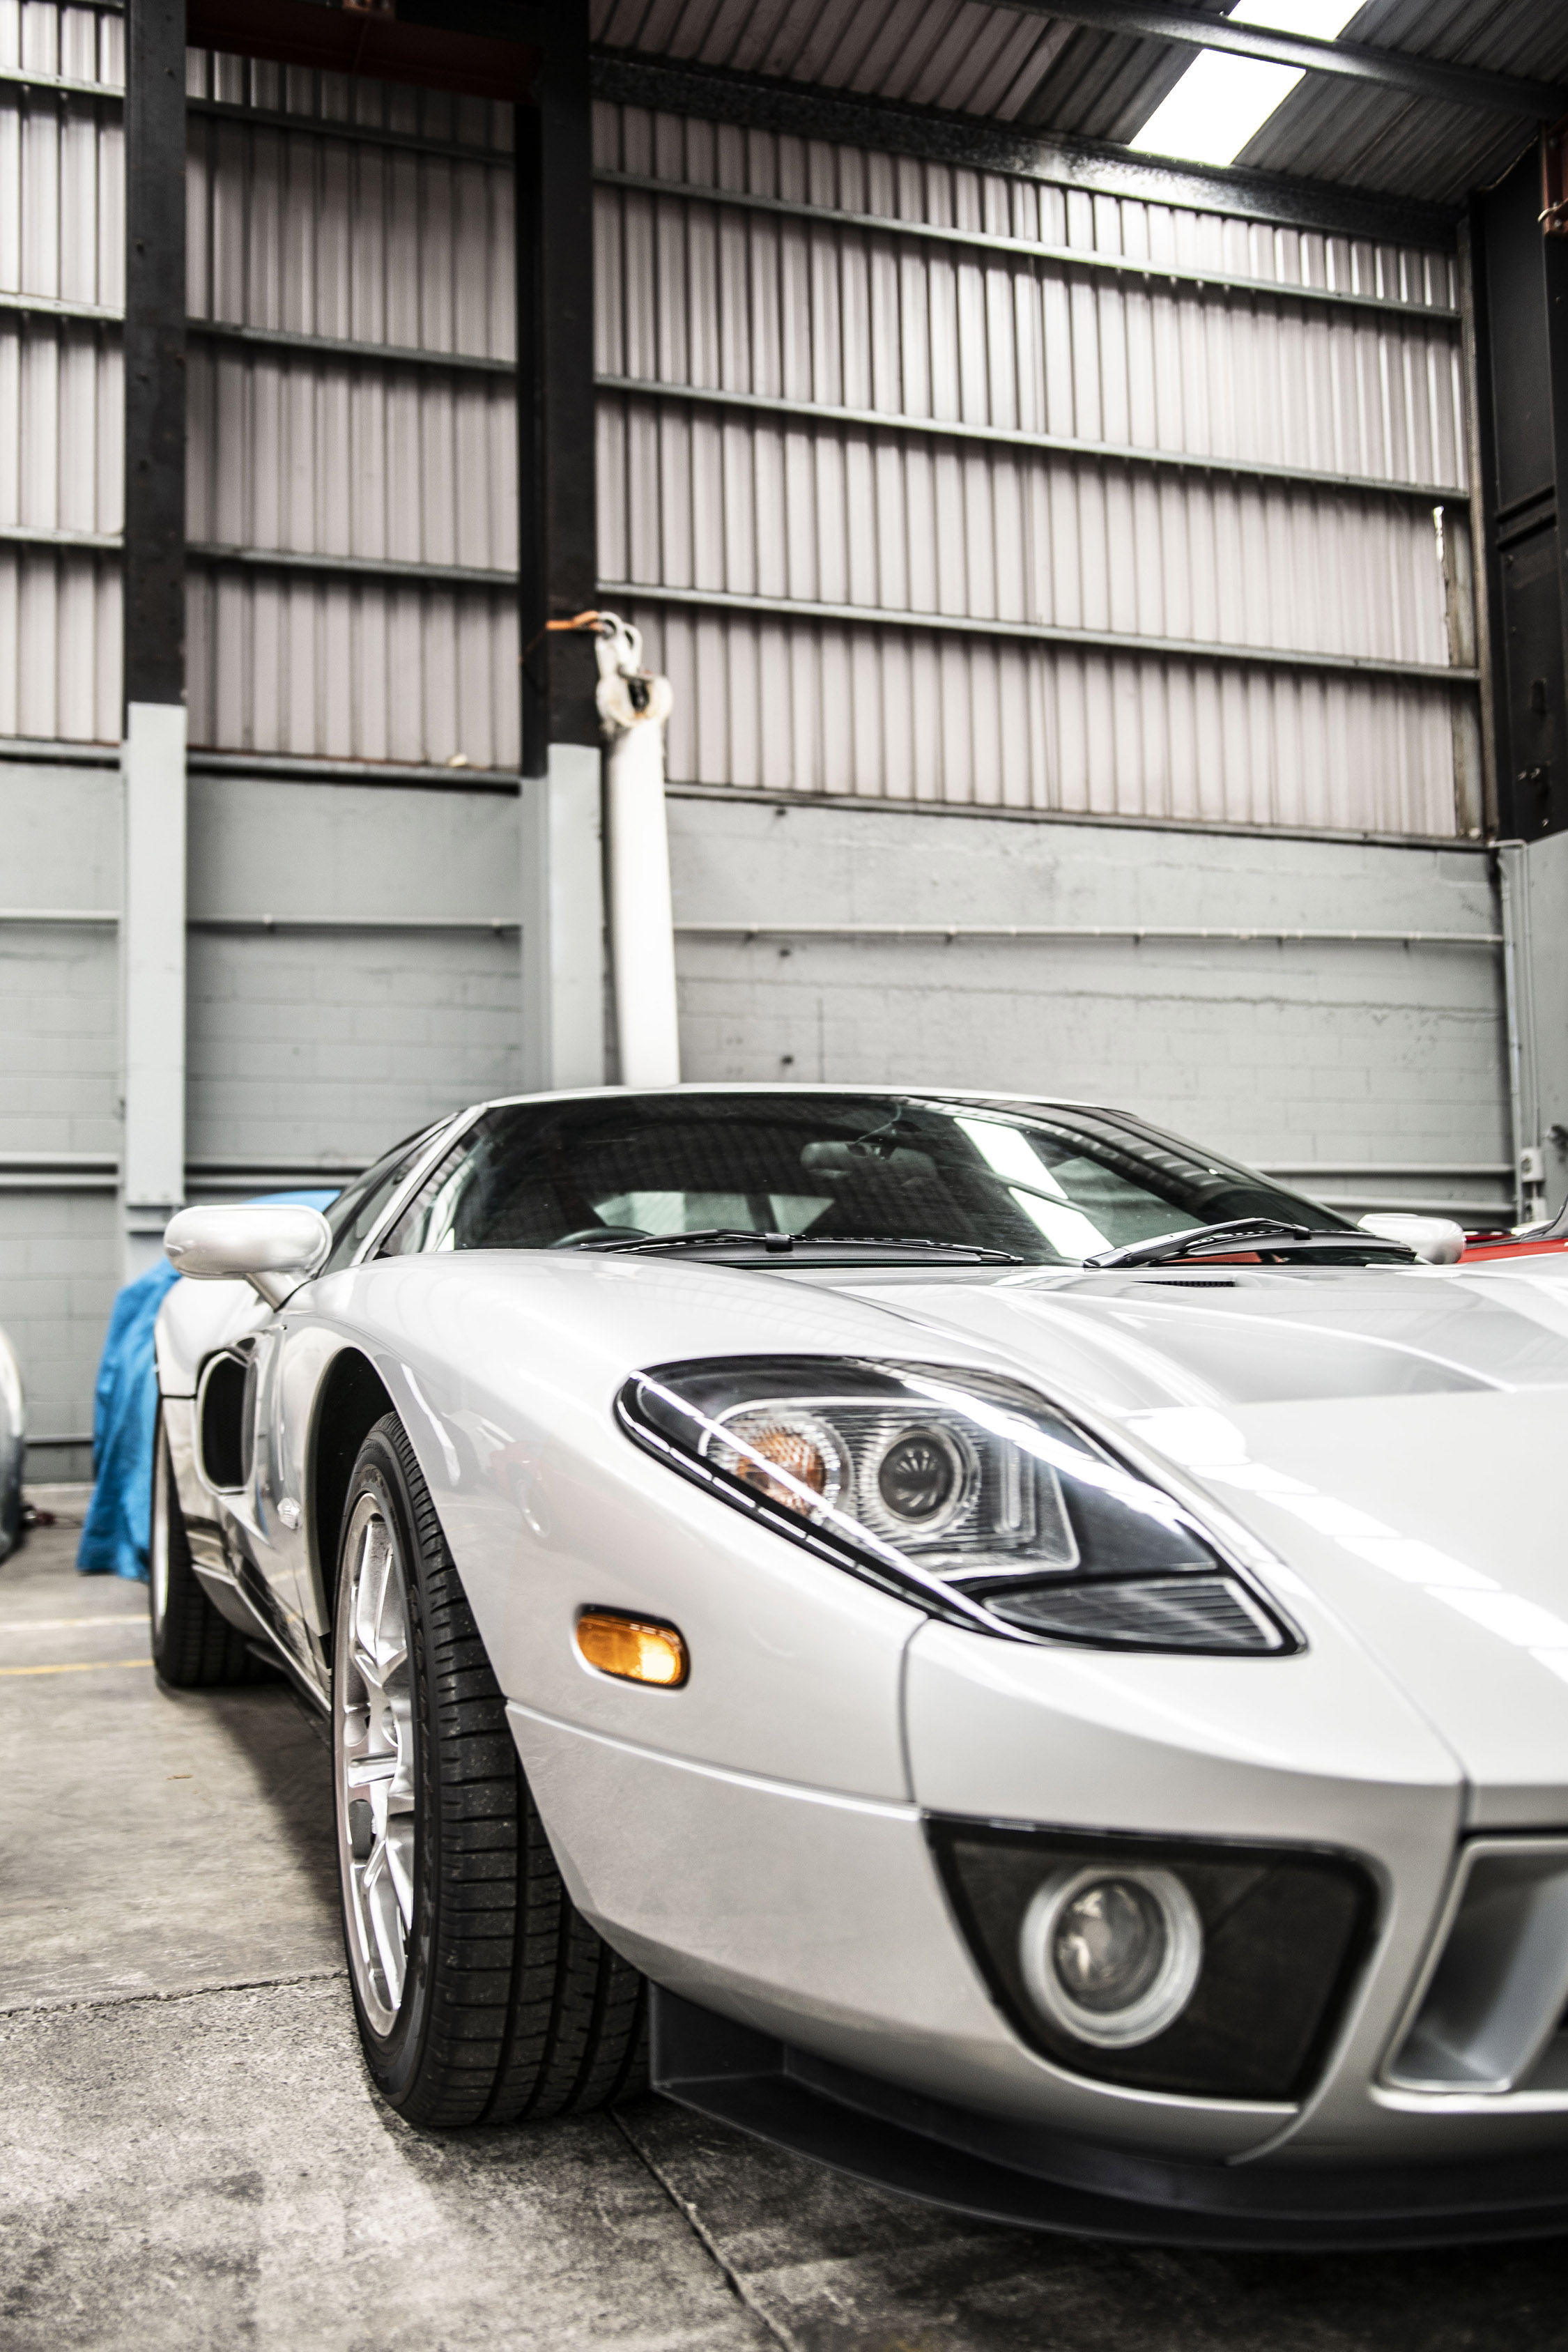 leon fitzpatrick ford gt40 autohouse storage cars and coffee